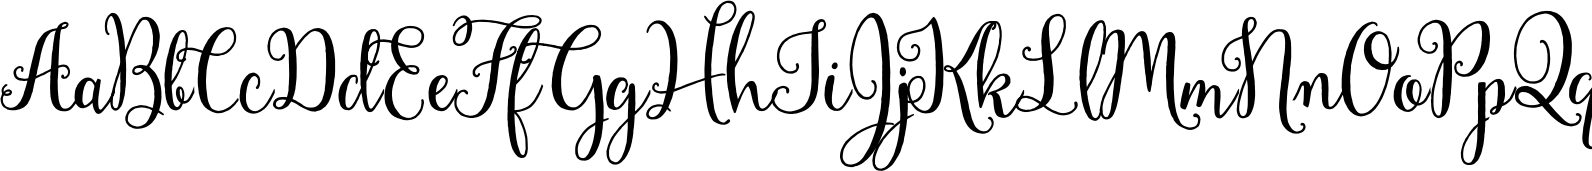 Mulberry Script Bold Font